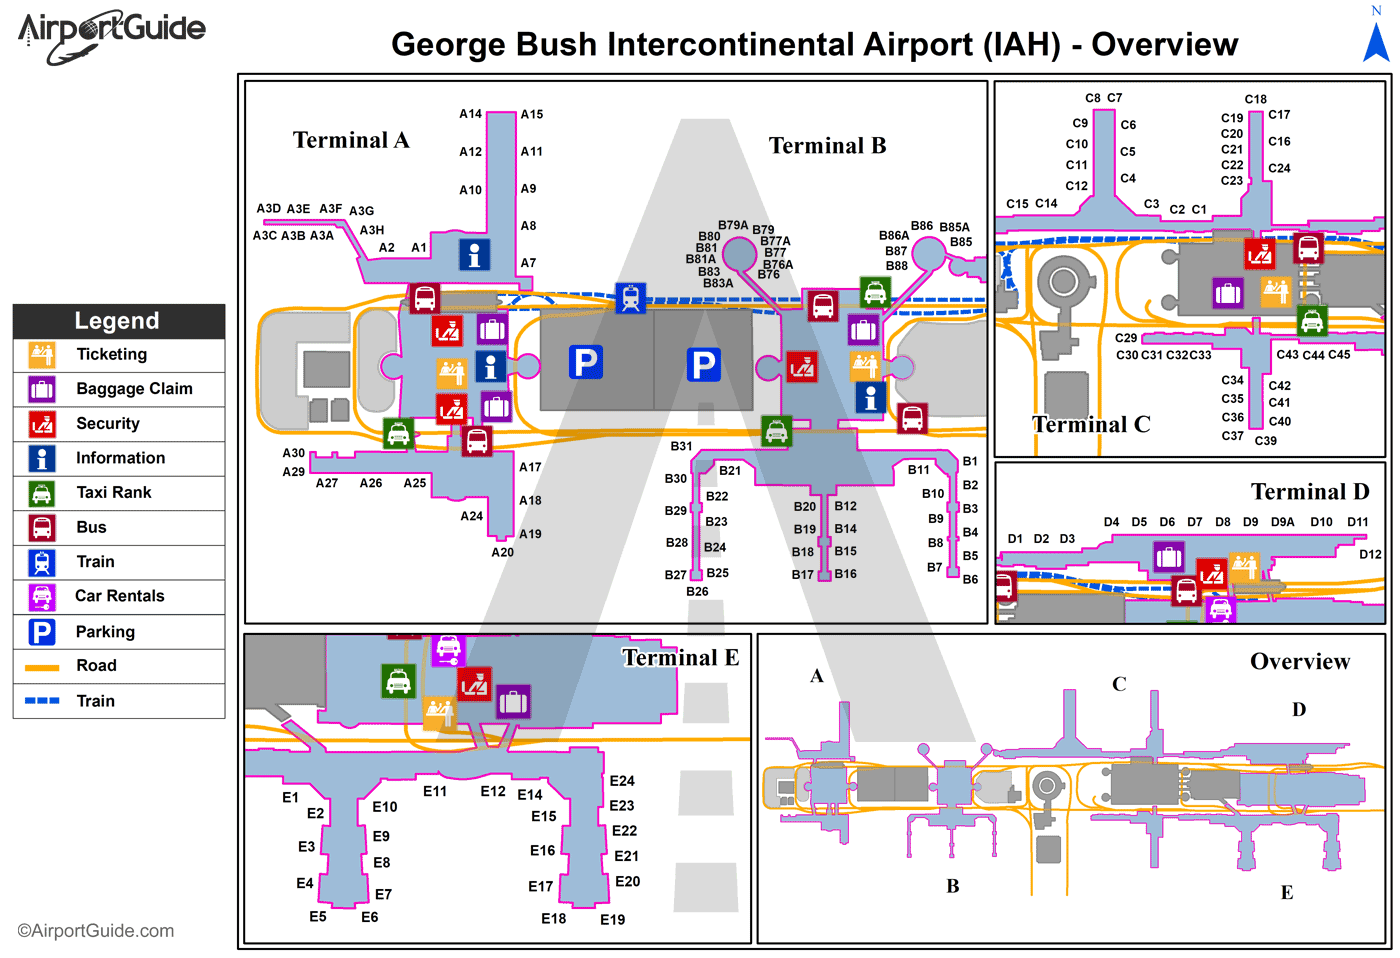 iah houston terminal map Houston George Bush Intercontinental Houston Iah Airport Terminal Maps Travelwidget Com iah houston terminal map